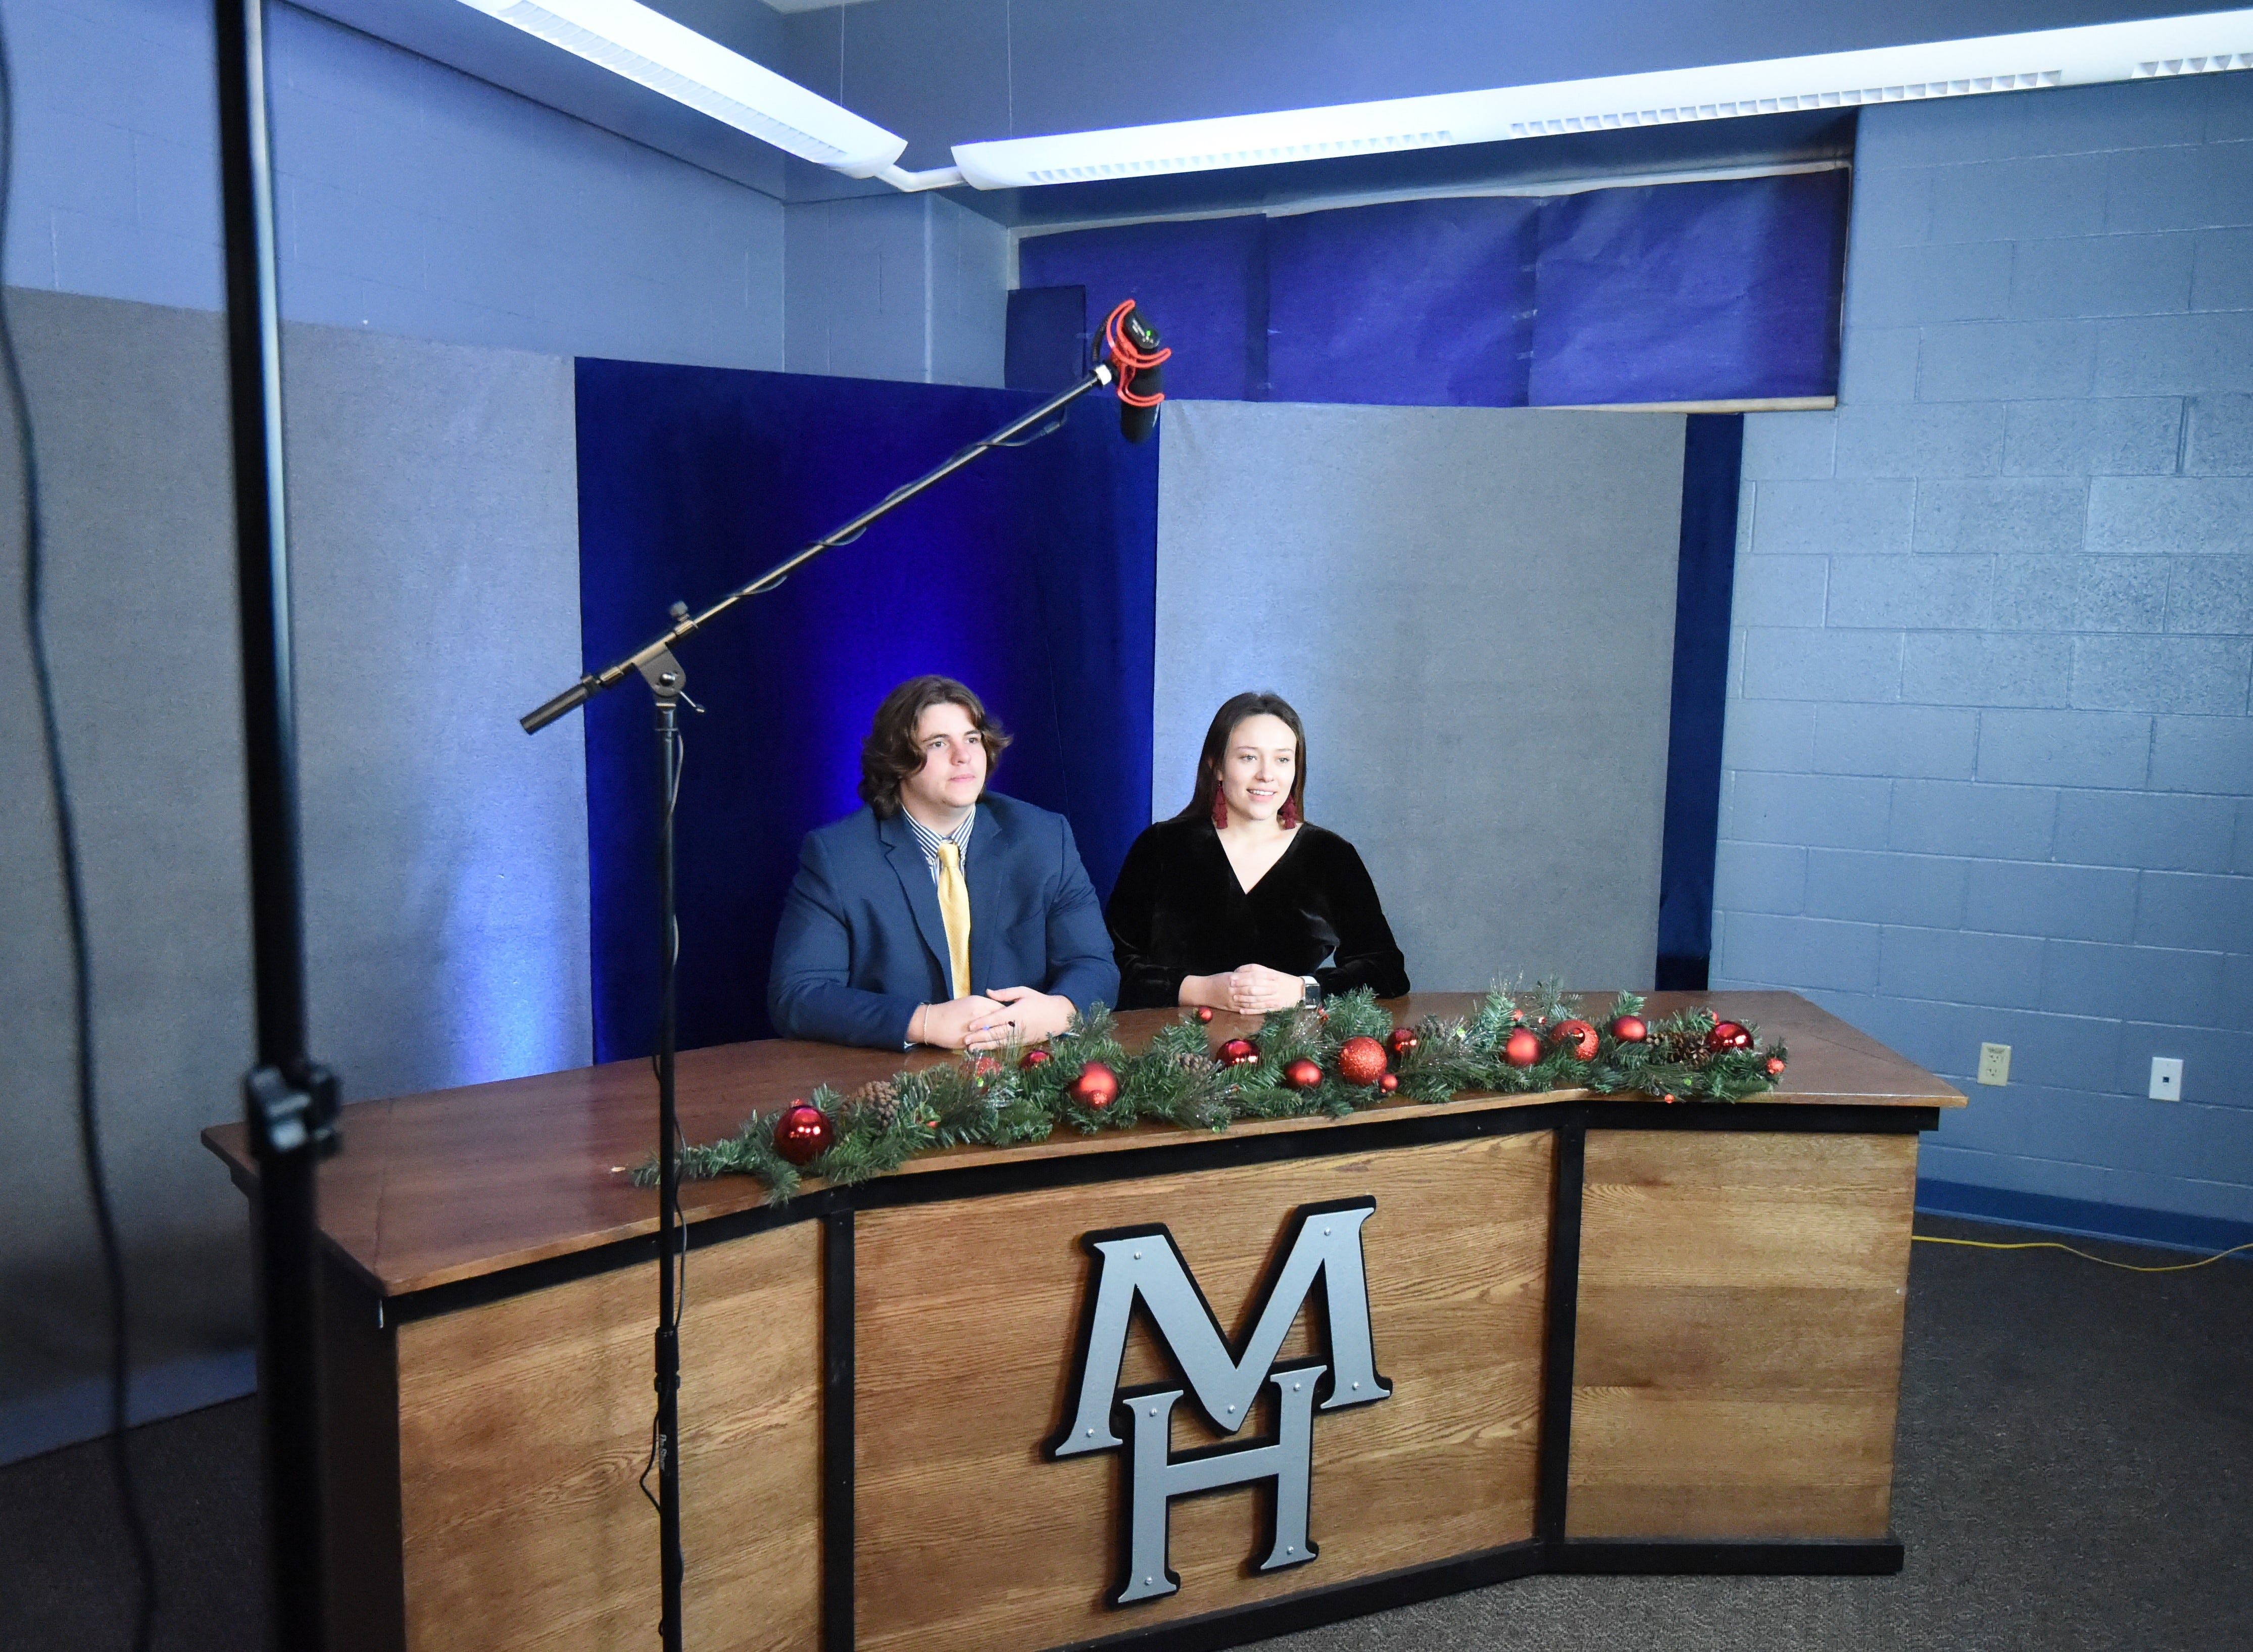 A microphone hangs above the heads of Bomber News Network anchors (from left) Zachary Spaulding and Sophie Quick during Tuesday's recording session. Suspending the mic above the news desk was a new wrinkle for the Dec. 13 broadcast.